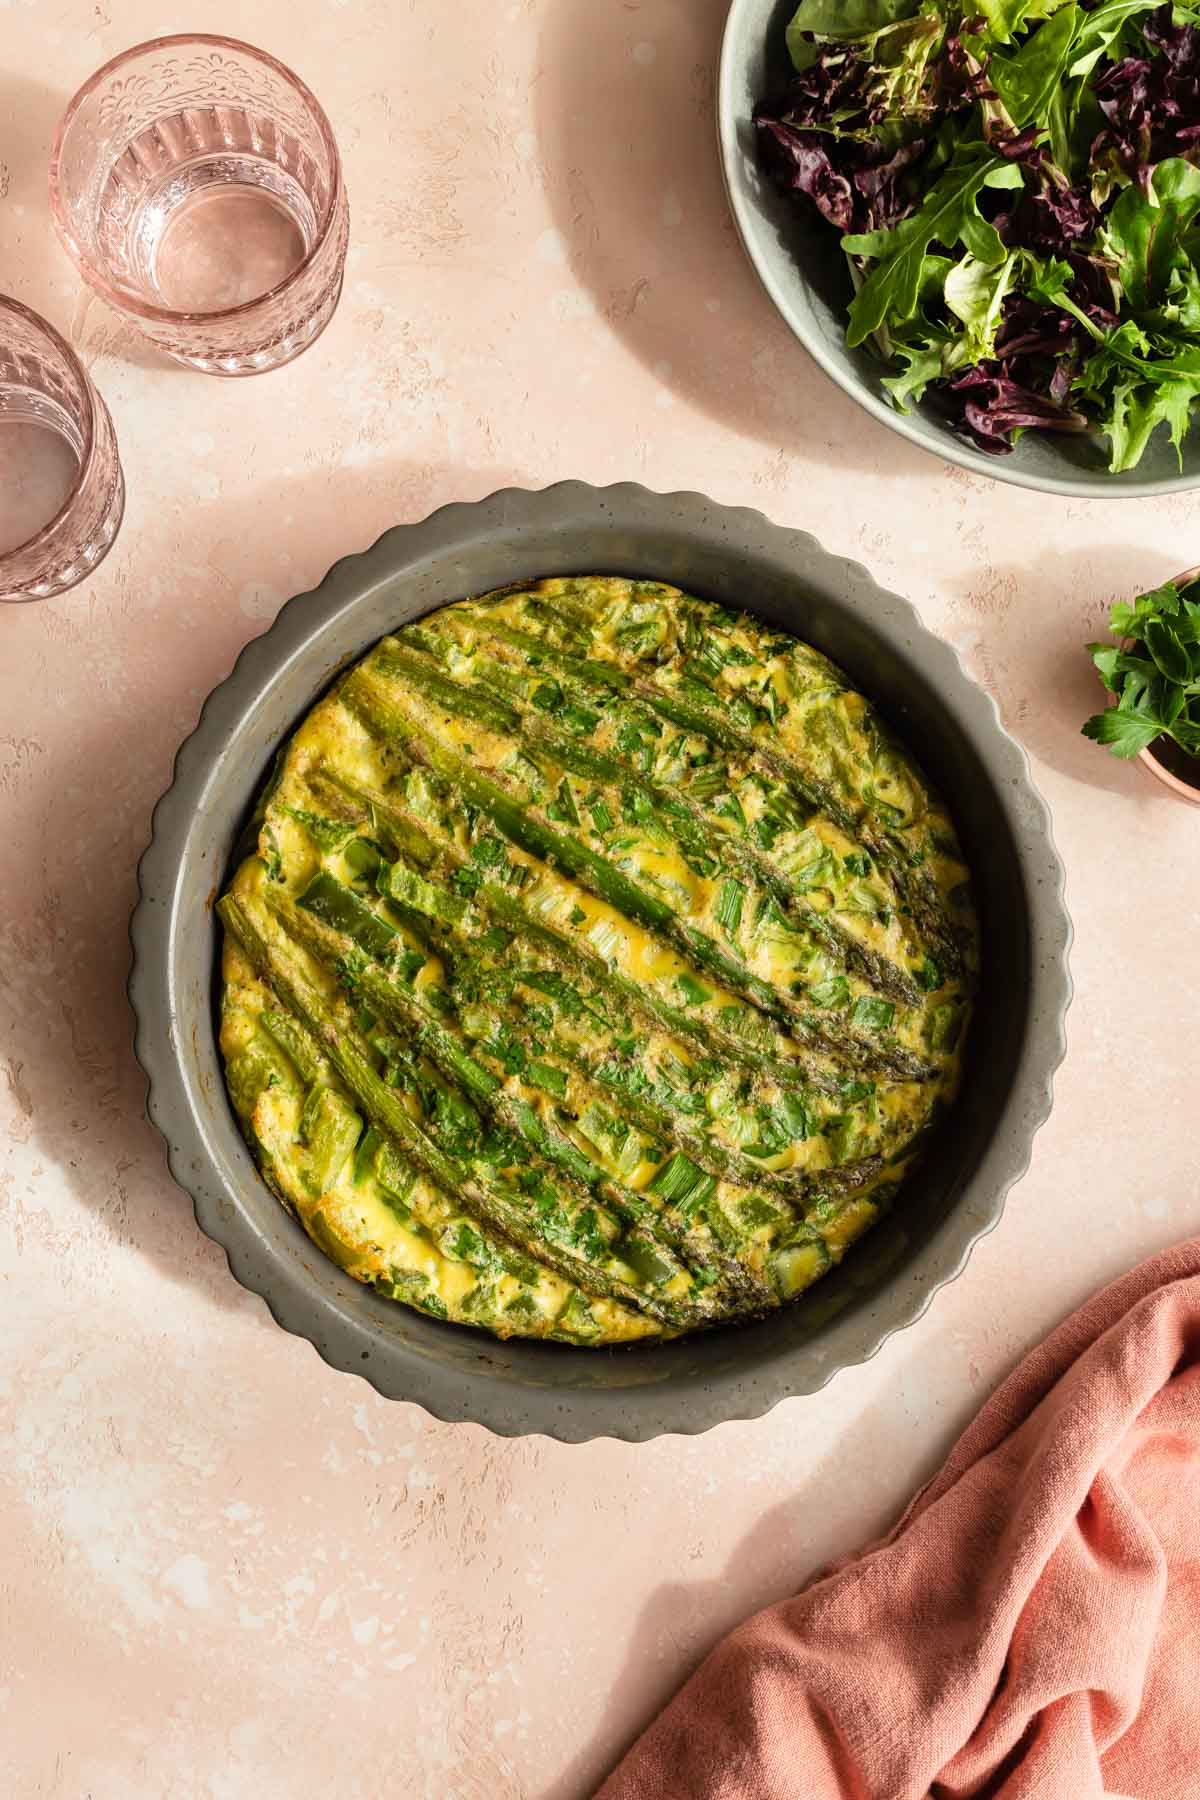 Overhead view of an asparagus quiche in a grey pie plate on a pink surface.